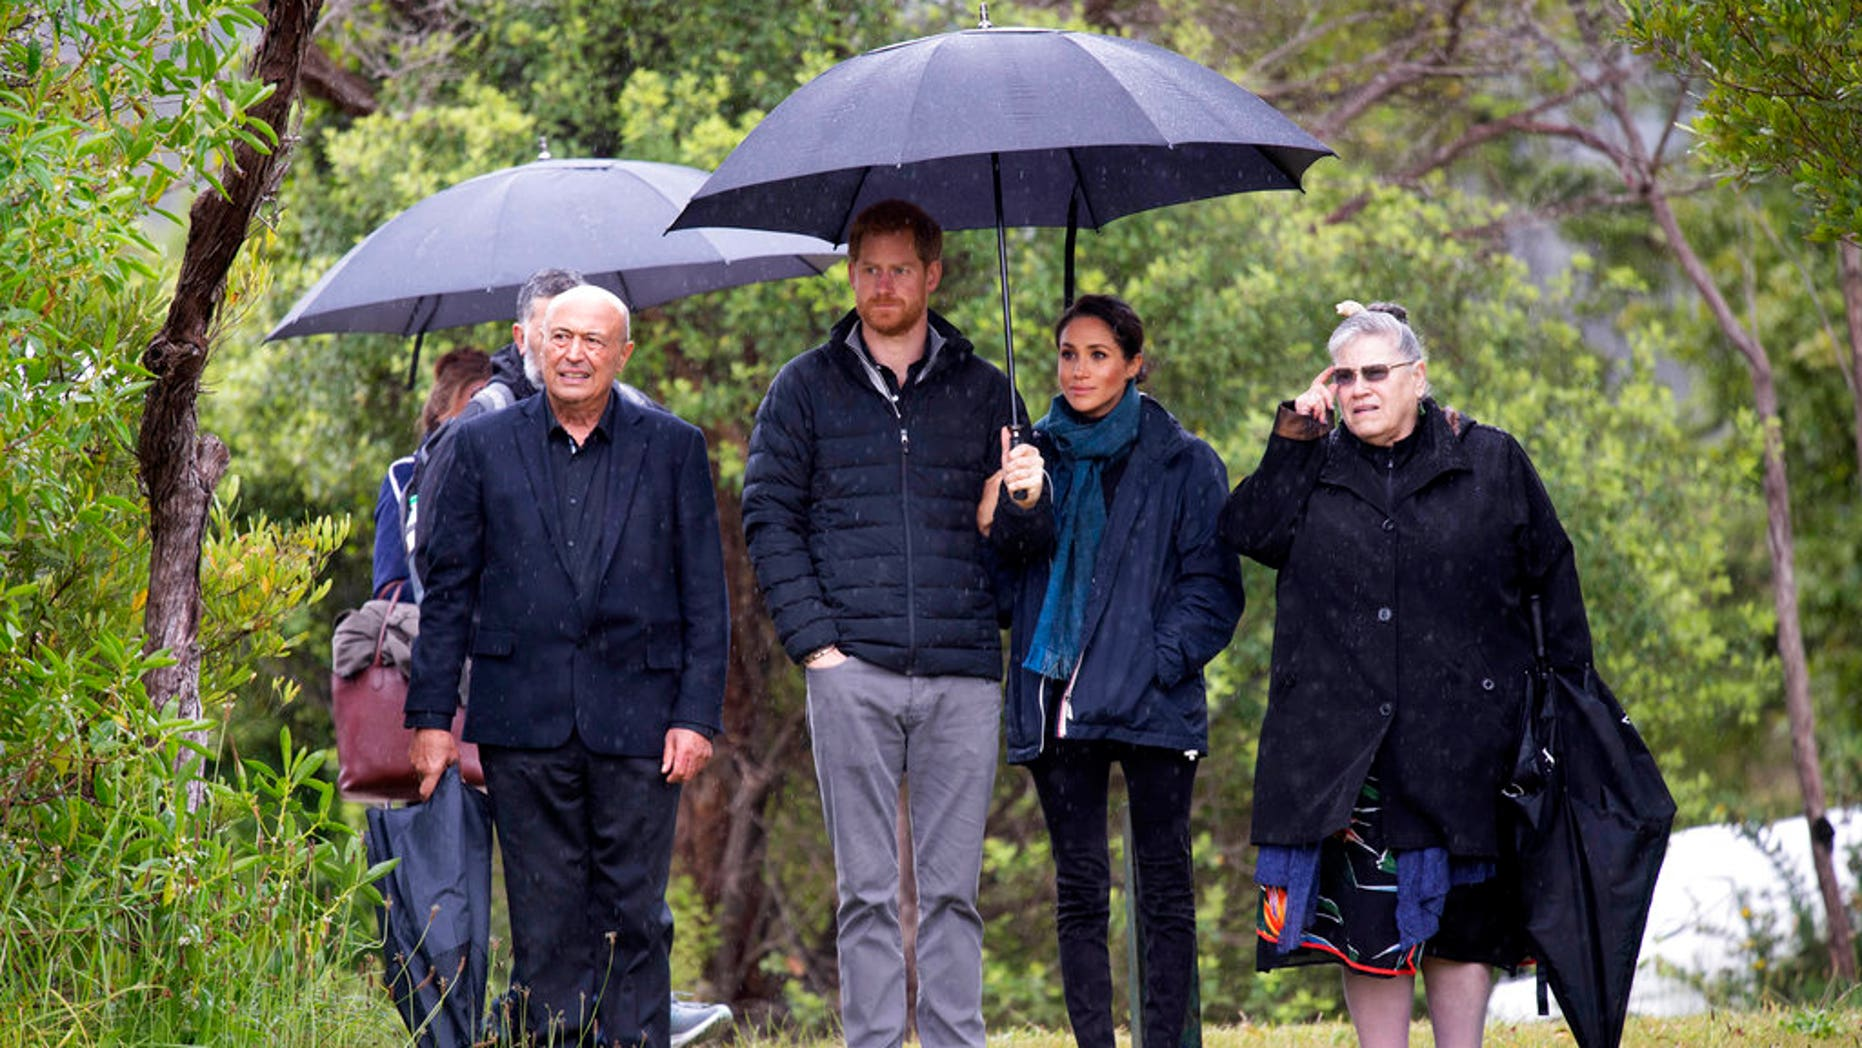 Maori ceremony for duke and duchess as royal tour ends